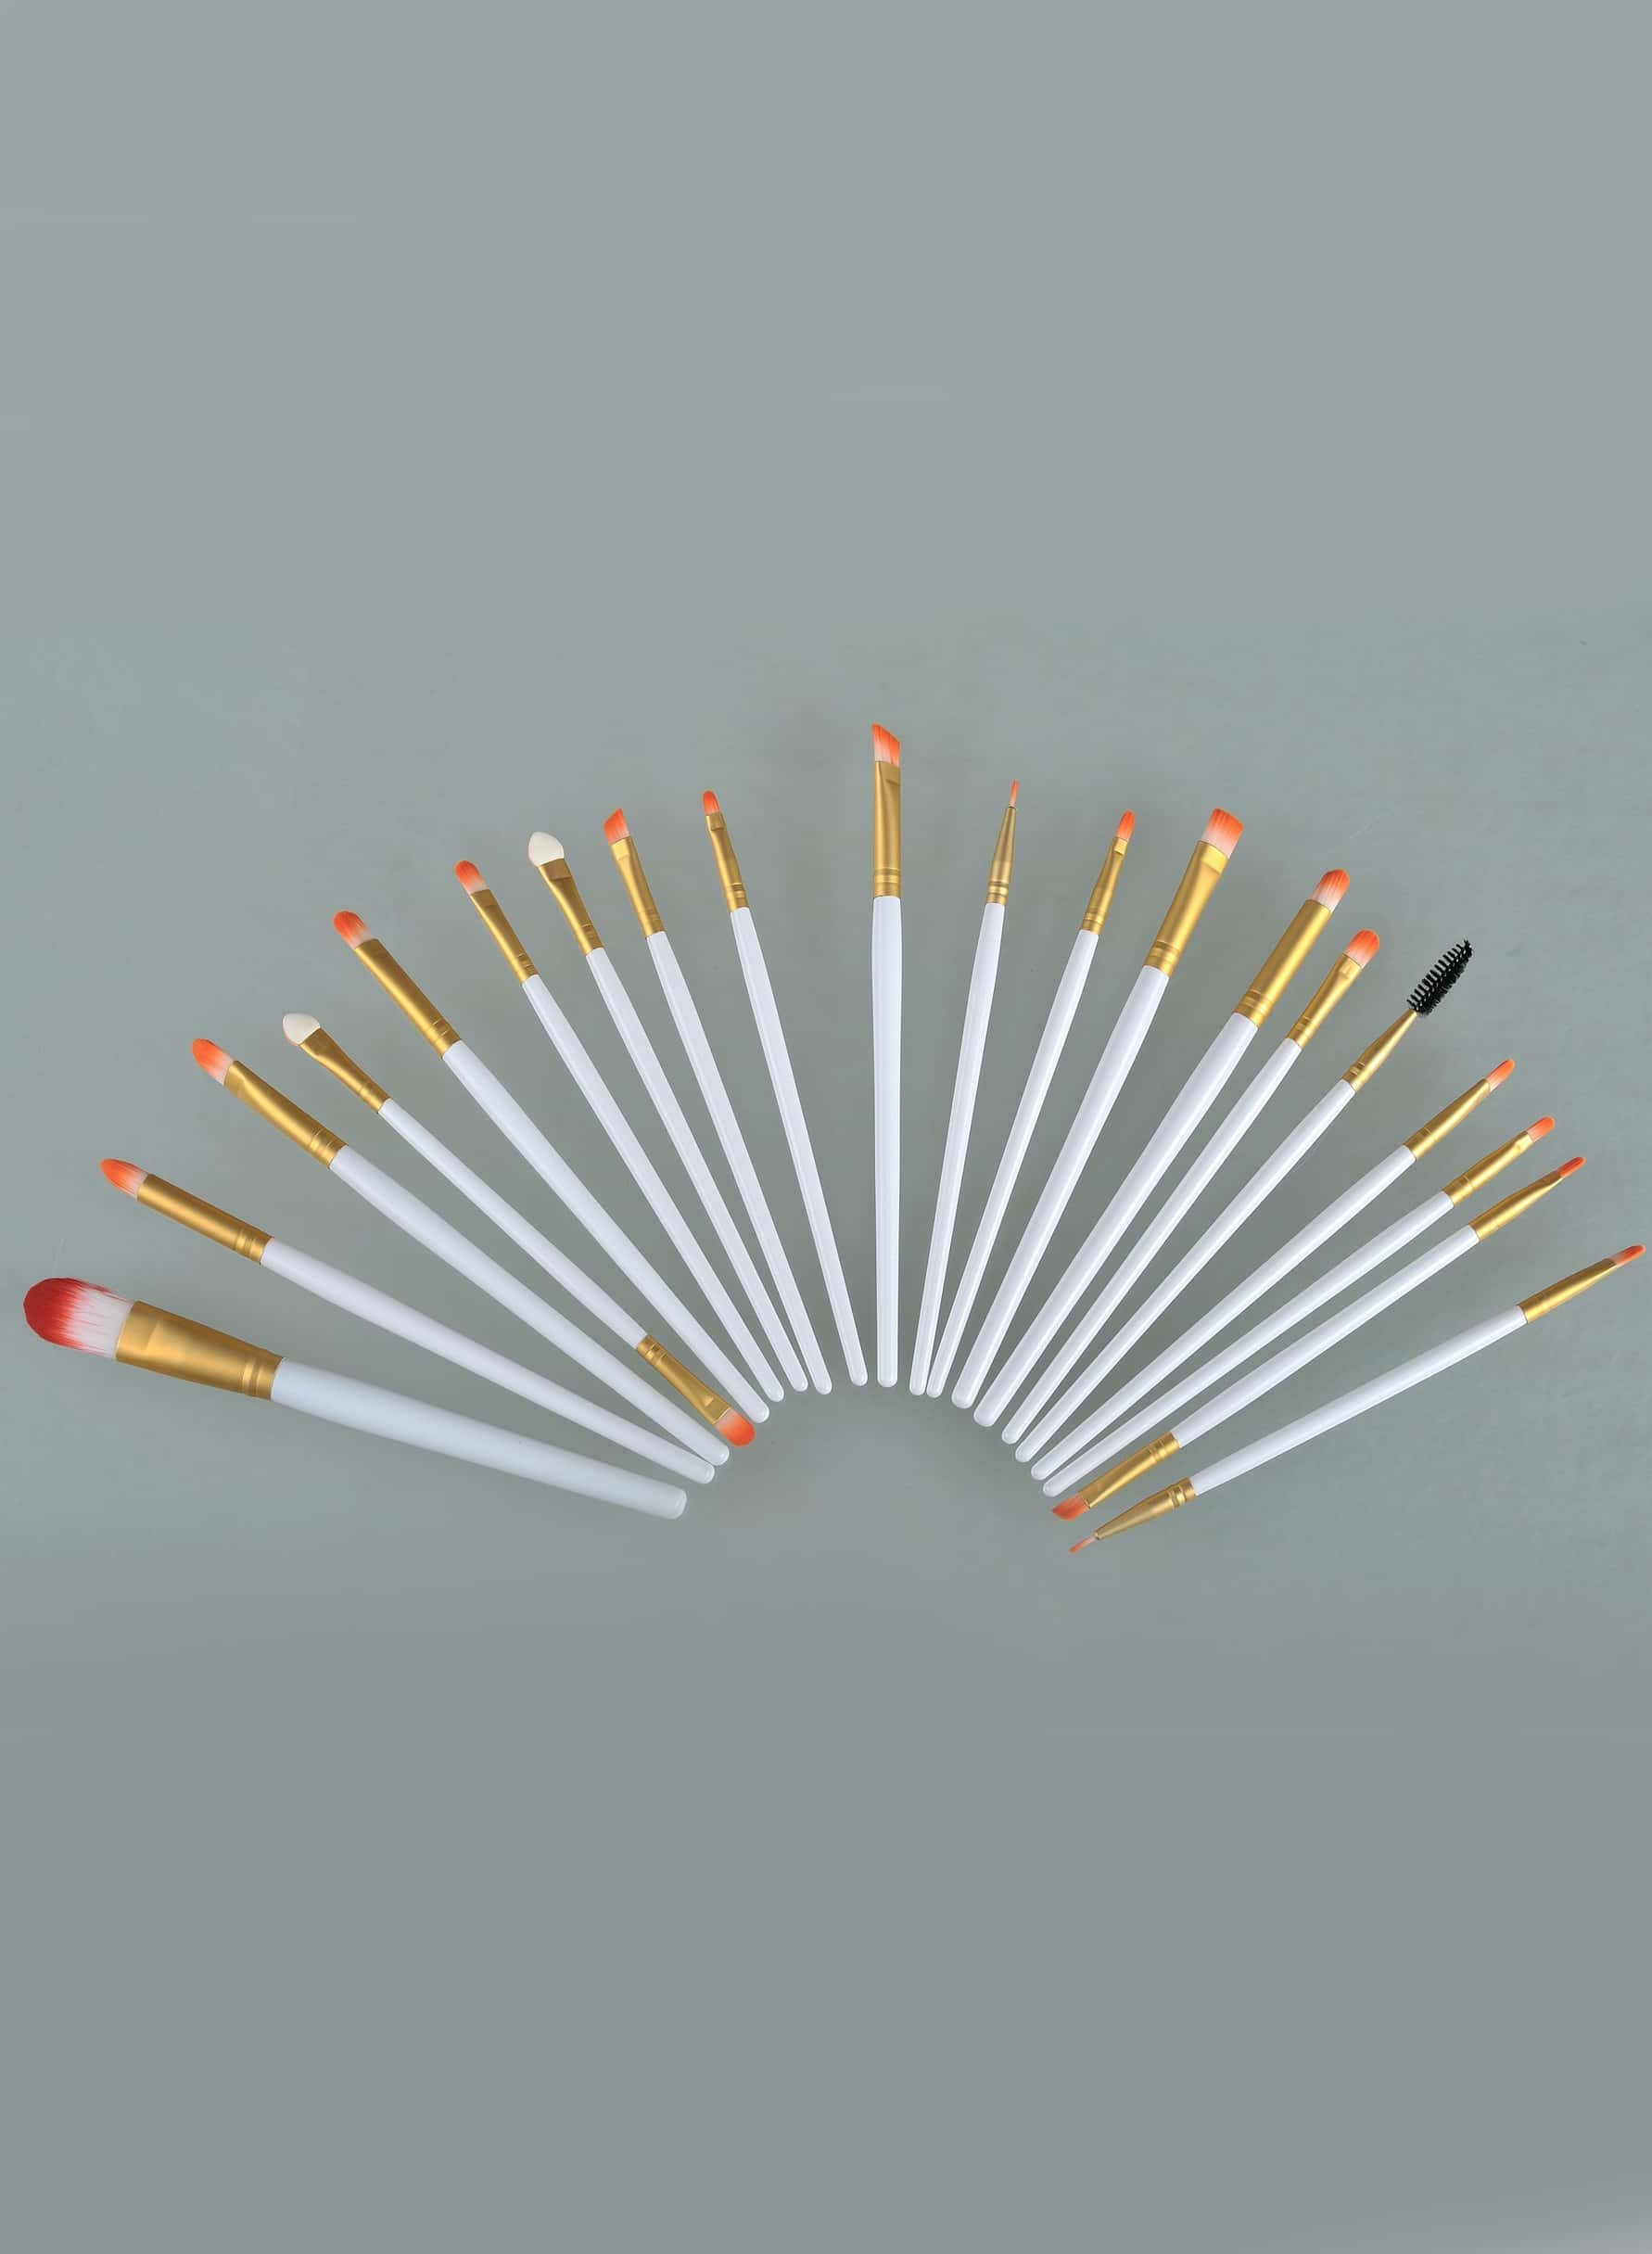 20pcs Makeup Brushes Set Metal Make Up Brush Set-White